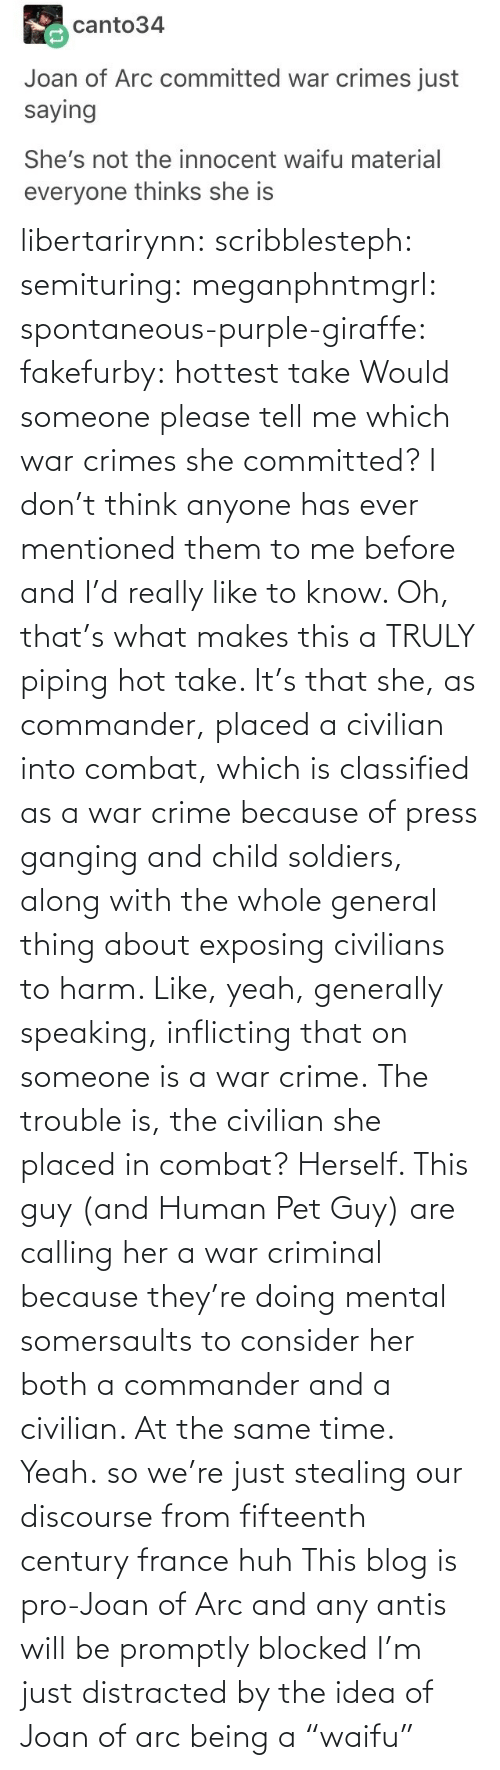 "Take It: libertarirynn: scribblesteph:  semituring:  meganphntmgrl:  spontaneous-purple-giraffe:   fakefurby: hottest take  Would someone please tell me which war crimes she committed? I don't think anyone has ever mentioned them to me before and I'd really like to know.    Oh, that's what makes this a TRULY piping hot take. It's that she, as commander, placed a civilian into combat, which is classified as a war crime because of press ganging and child soldiers, along with the whole general thing about exposing civilians to harm. Like, yeah, generally speaking, inflicting that on someone is a war crime. The trouble is, the civilian she placed in combat? Herself.  This guy (and Human Pet Guy) are calling her a war criminal because they're doing mental somersaults to consider her both a commander and a civilian. At the same time.  Yeah.  so we're just stealing our discourse from fifteenth century france huh   This blog is pro-Joan of Arc and any antis will be promptly blocked   I'm just distracted by the idea of Joan of arc being a ""waifu"""